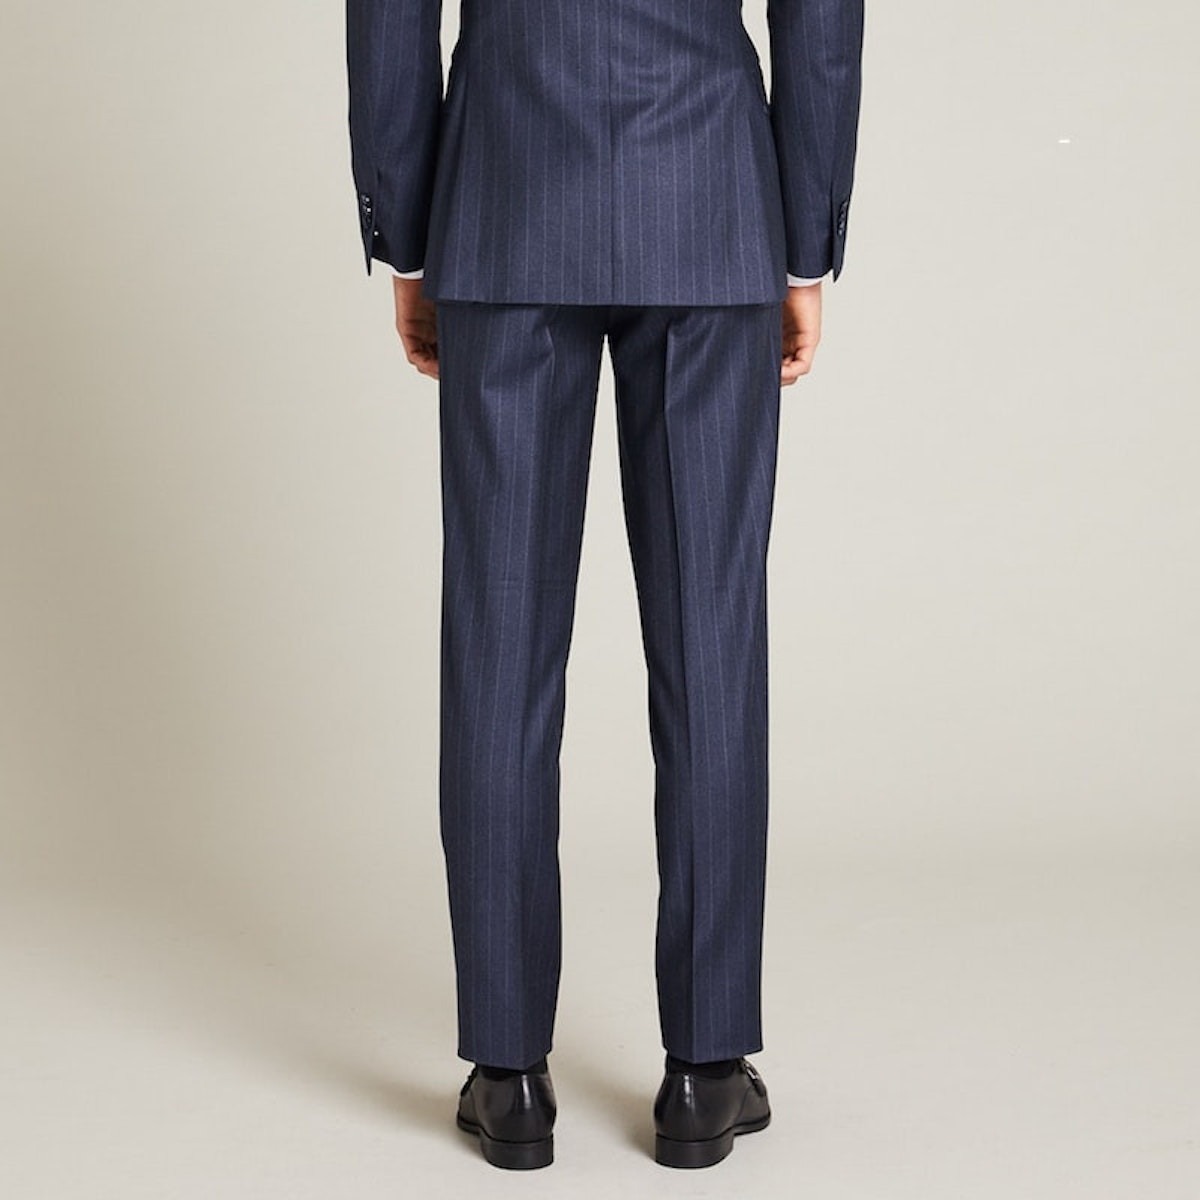 InStitchu Collection The Lander Navy Pinstripe Pants